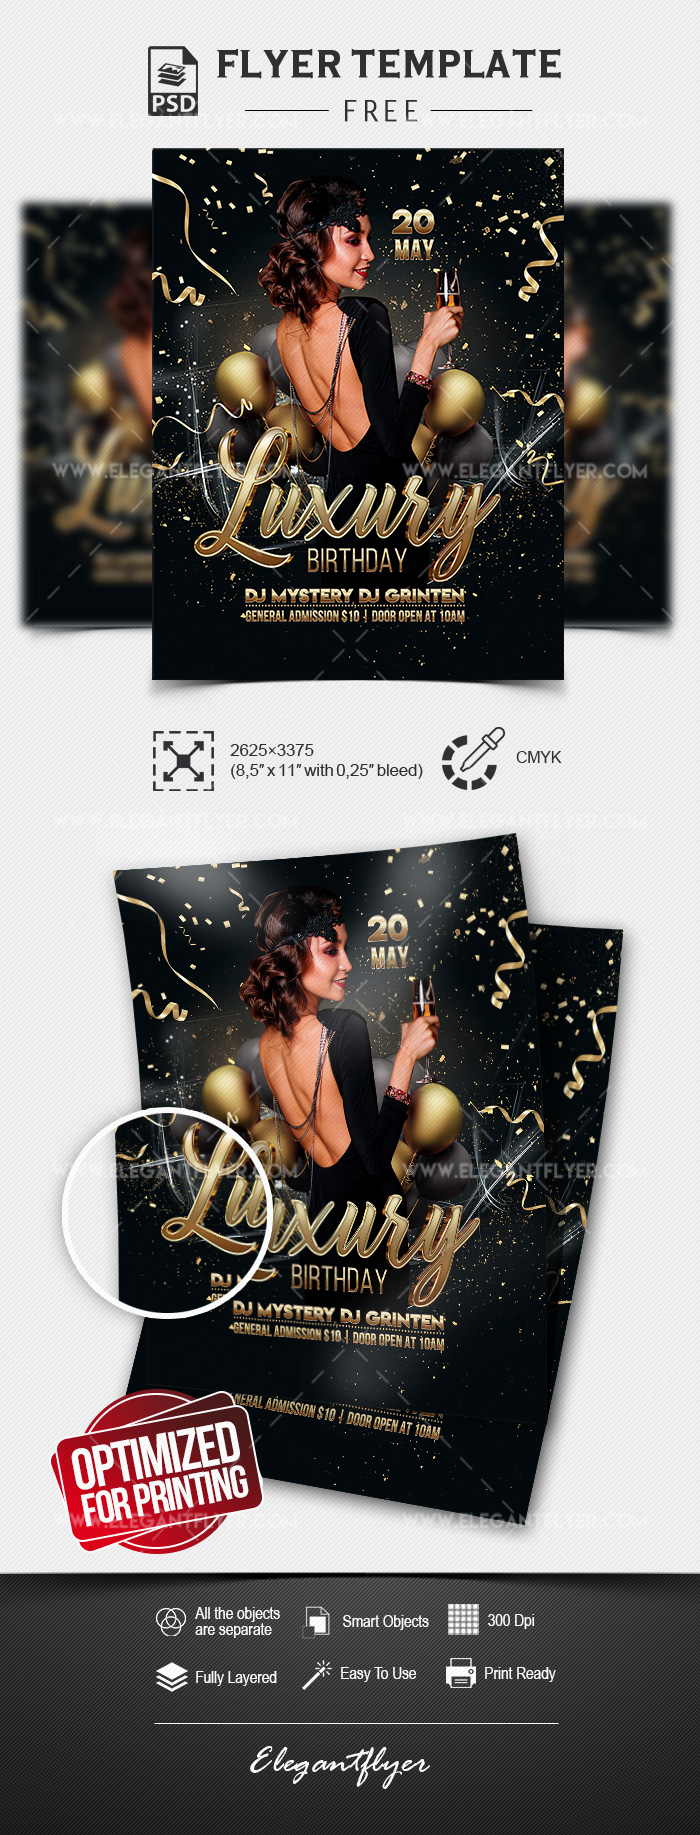 Luxury Birthday – Free Flyer Template in PSD